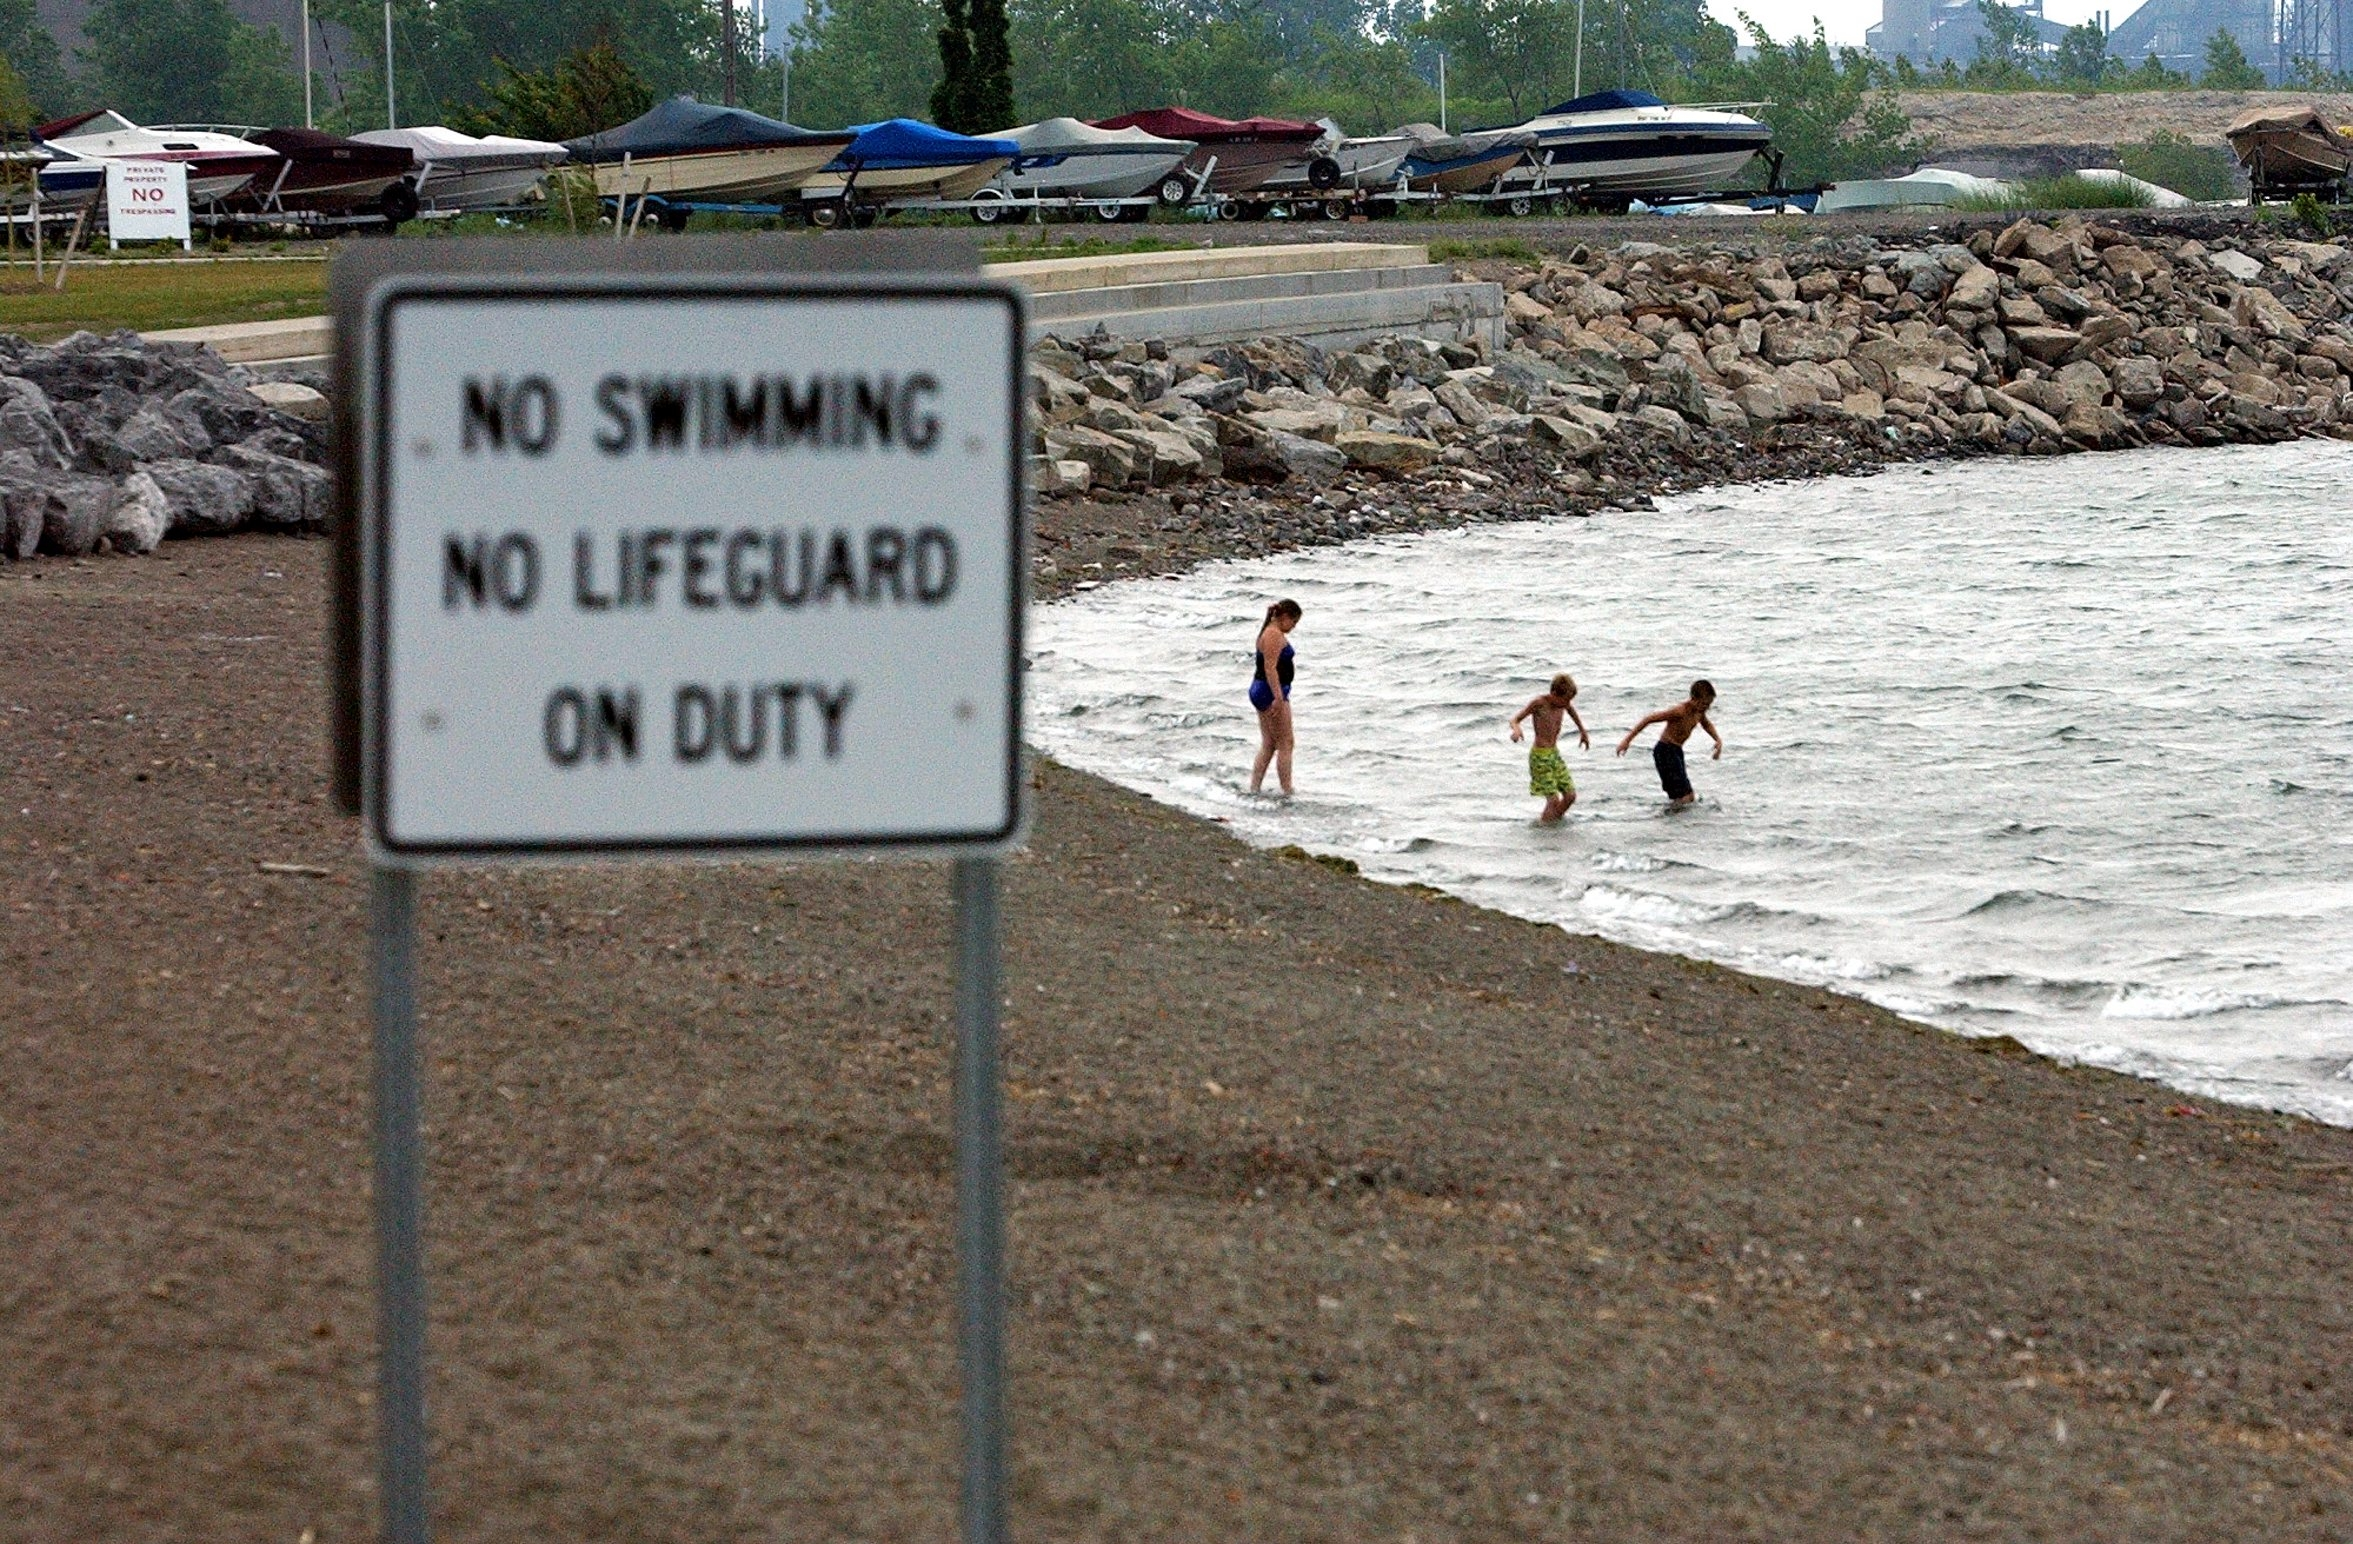 "A file photo shows children ignoring the ""no swimming"" sign at Gallagher Beach. The state says the cost of maintaining a sand beach and the likelihood the beach would frequently close over water safety issues make swimming unsuitable there."